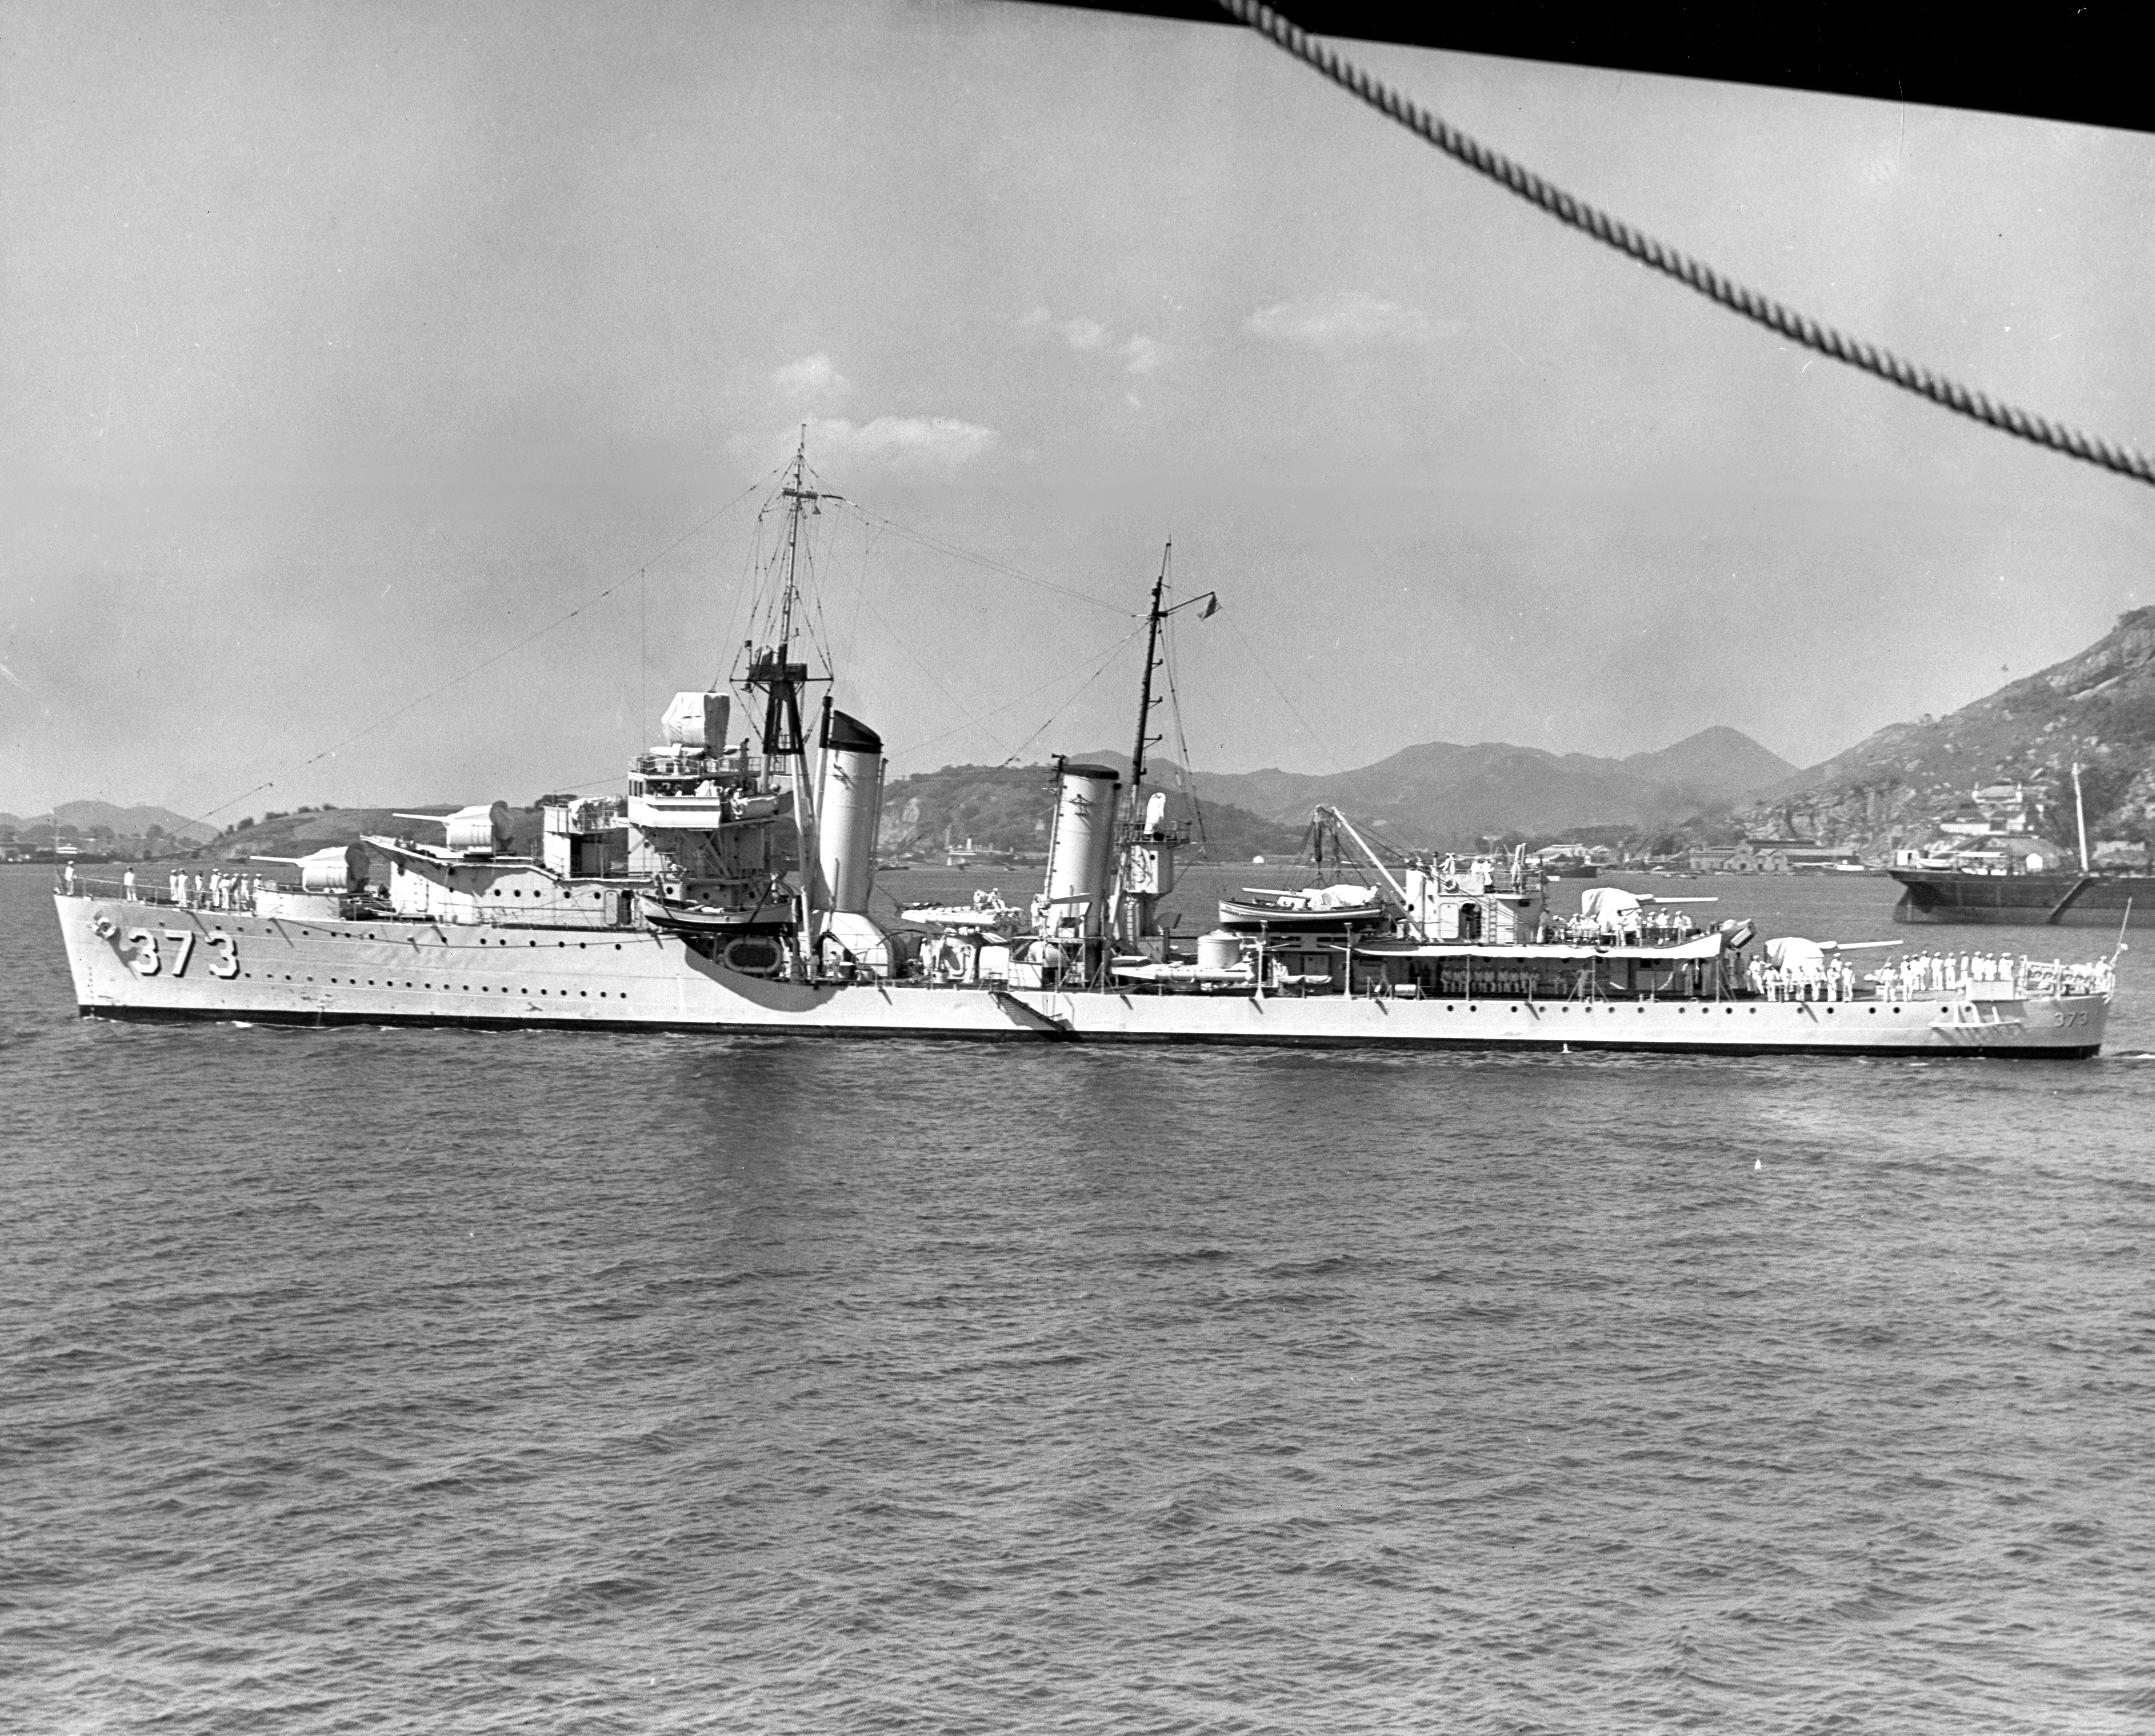 The U.S. Navy destroyer USS Shaw (DD-373) entering Rio de Janeiro harbor, Brazil, 1 September 1938. Taken by a USS Enterprise (CV-6) photographer. Official U.S. Navy Photograph, from the collections of the Naval Historical Center.